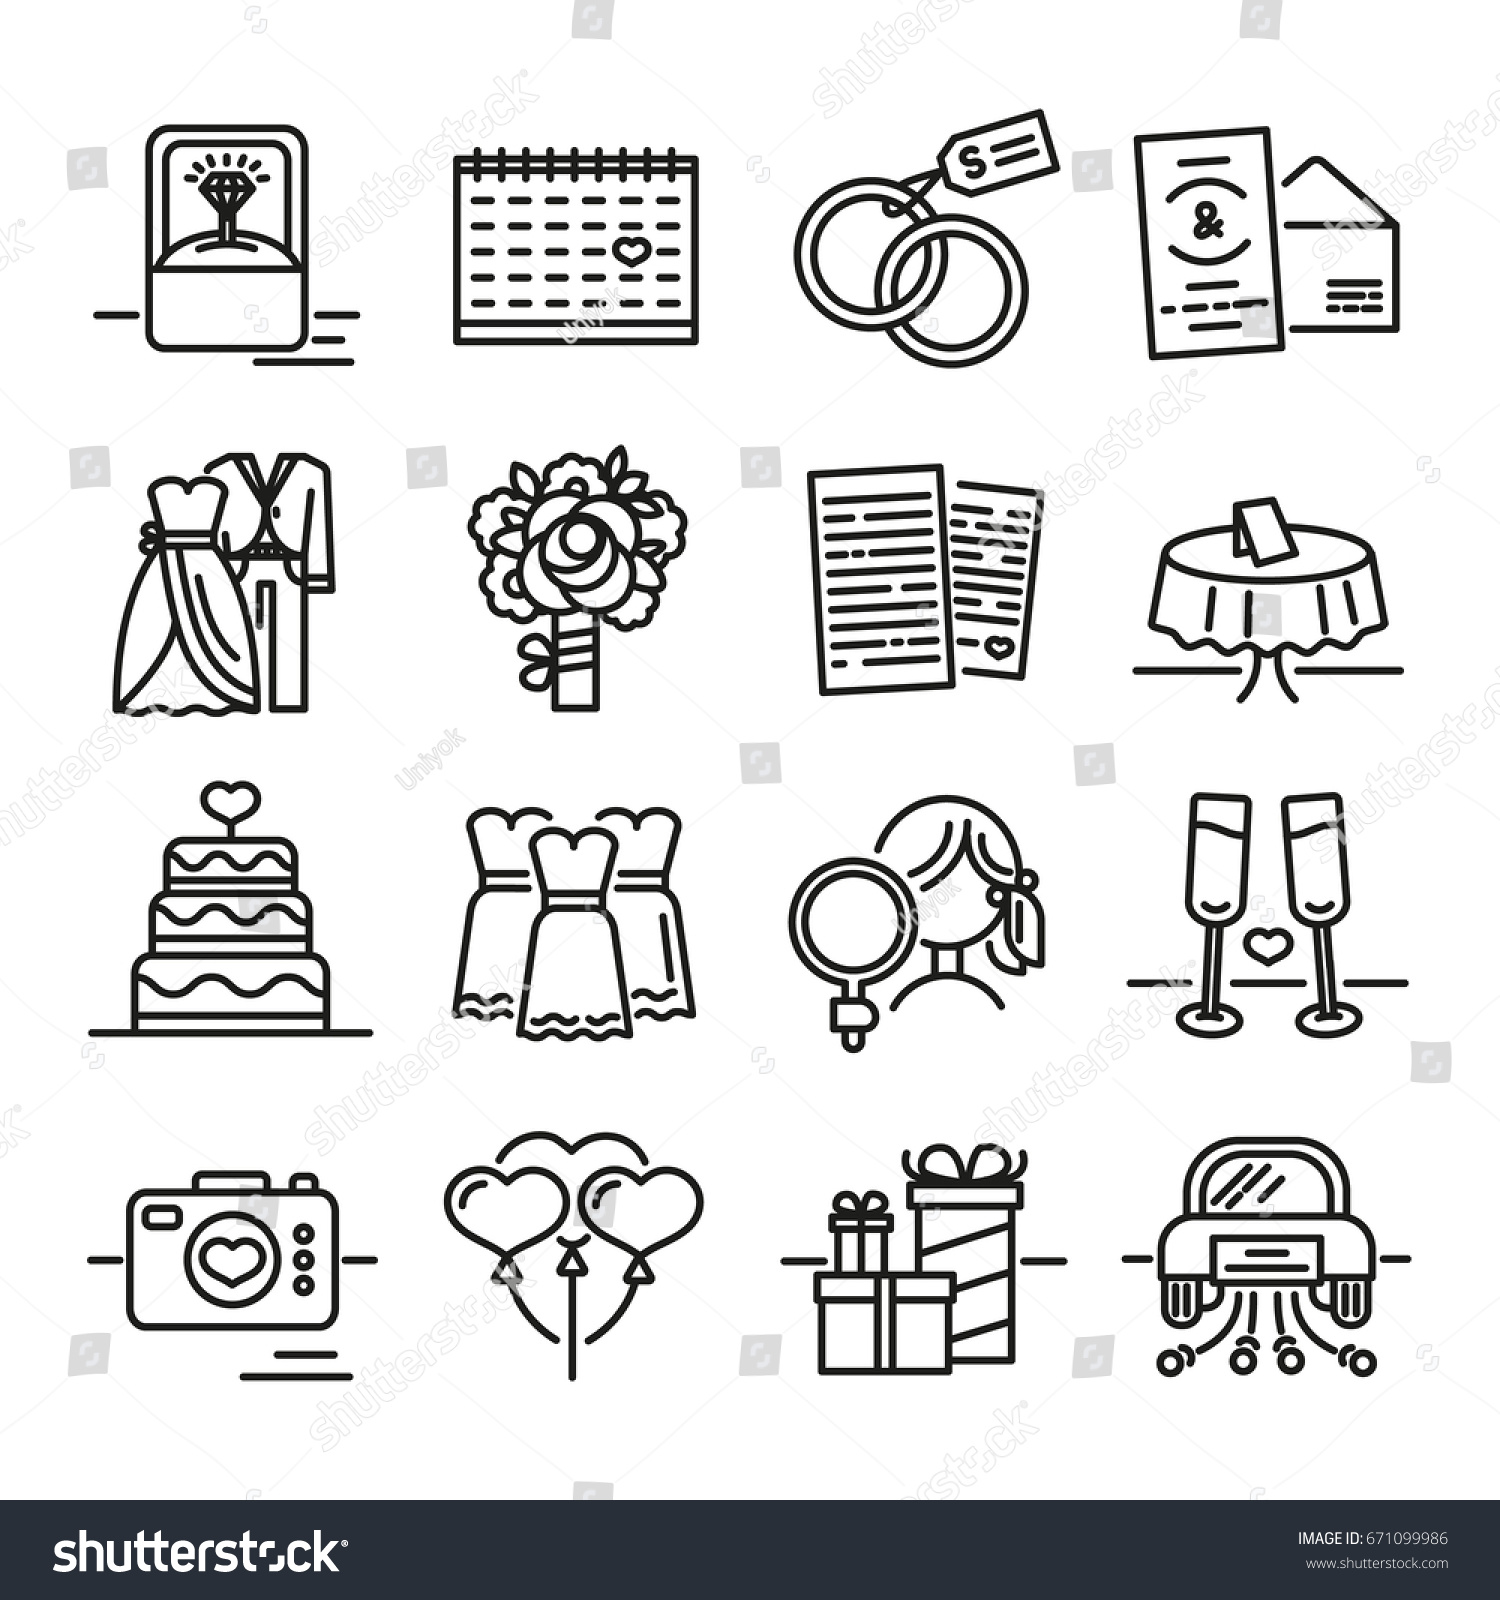 Set line icon wedding symbols groom stock vector 671099986 set line icon for wedding the symbols of the groom the bride the biocorpaavc Image collections